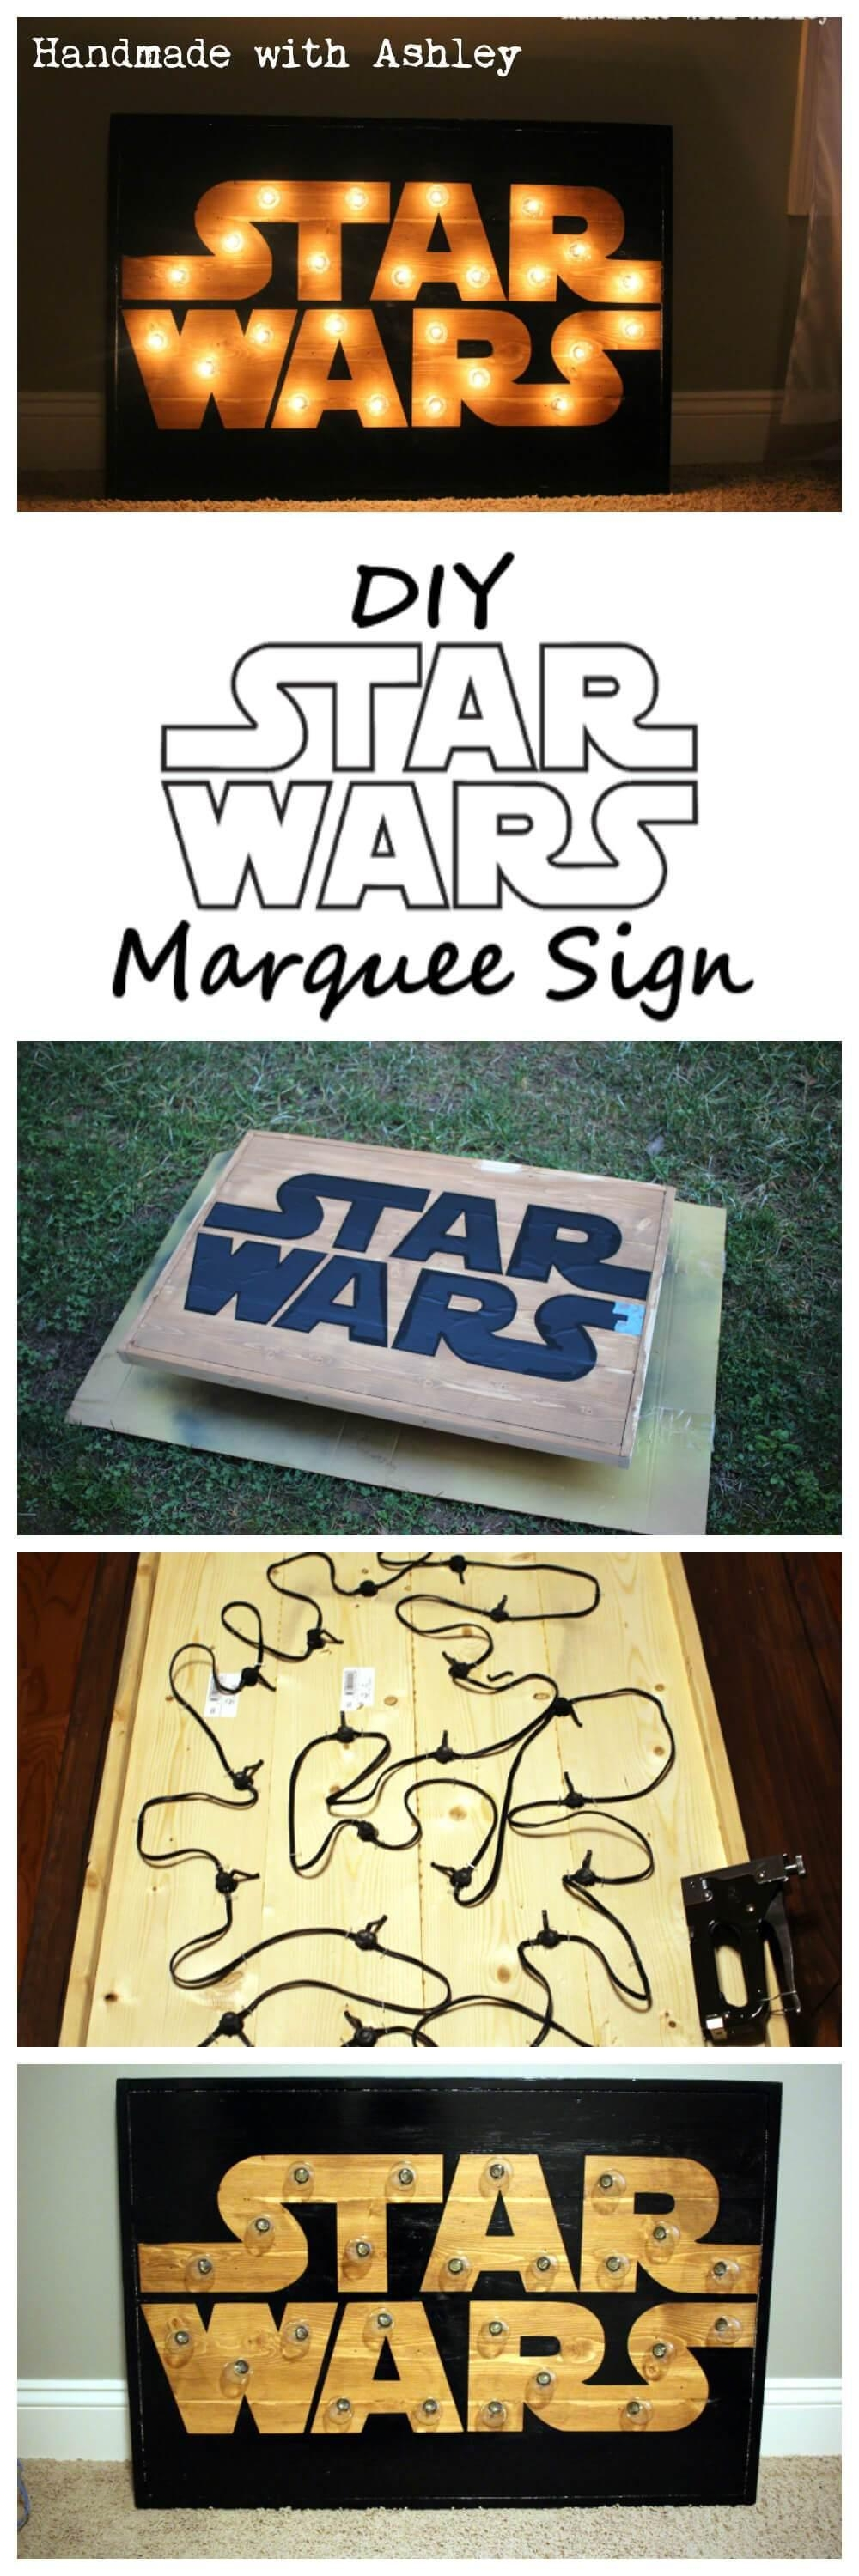 Diy Star Wars Marquee Wall Art Tutorial – Handmade With Ashley Intended For Diy Star Wars Wall Art (Image 8 of 20)